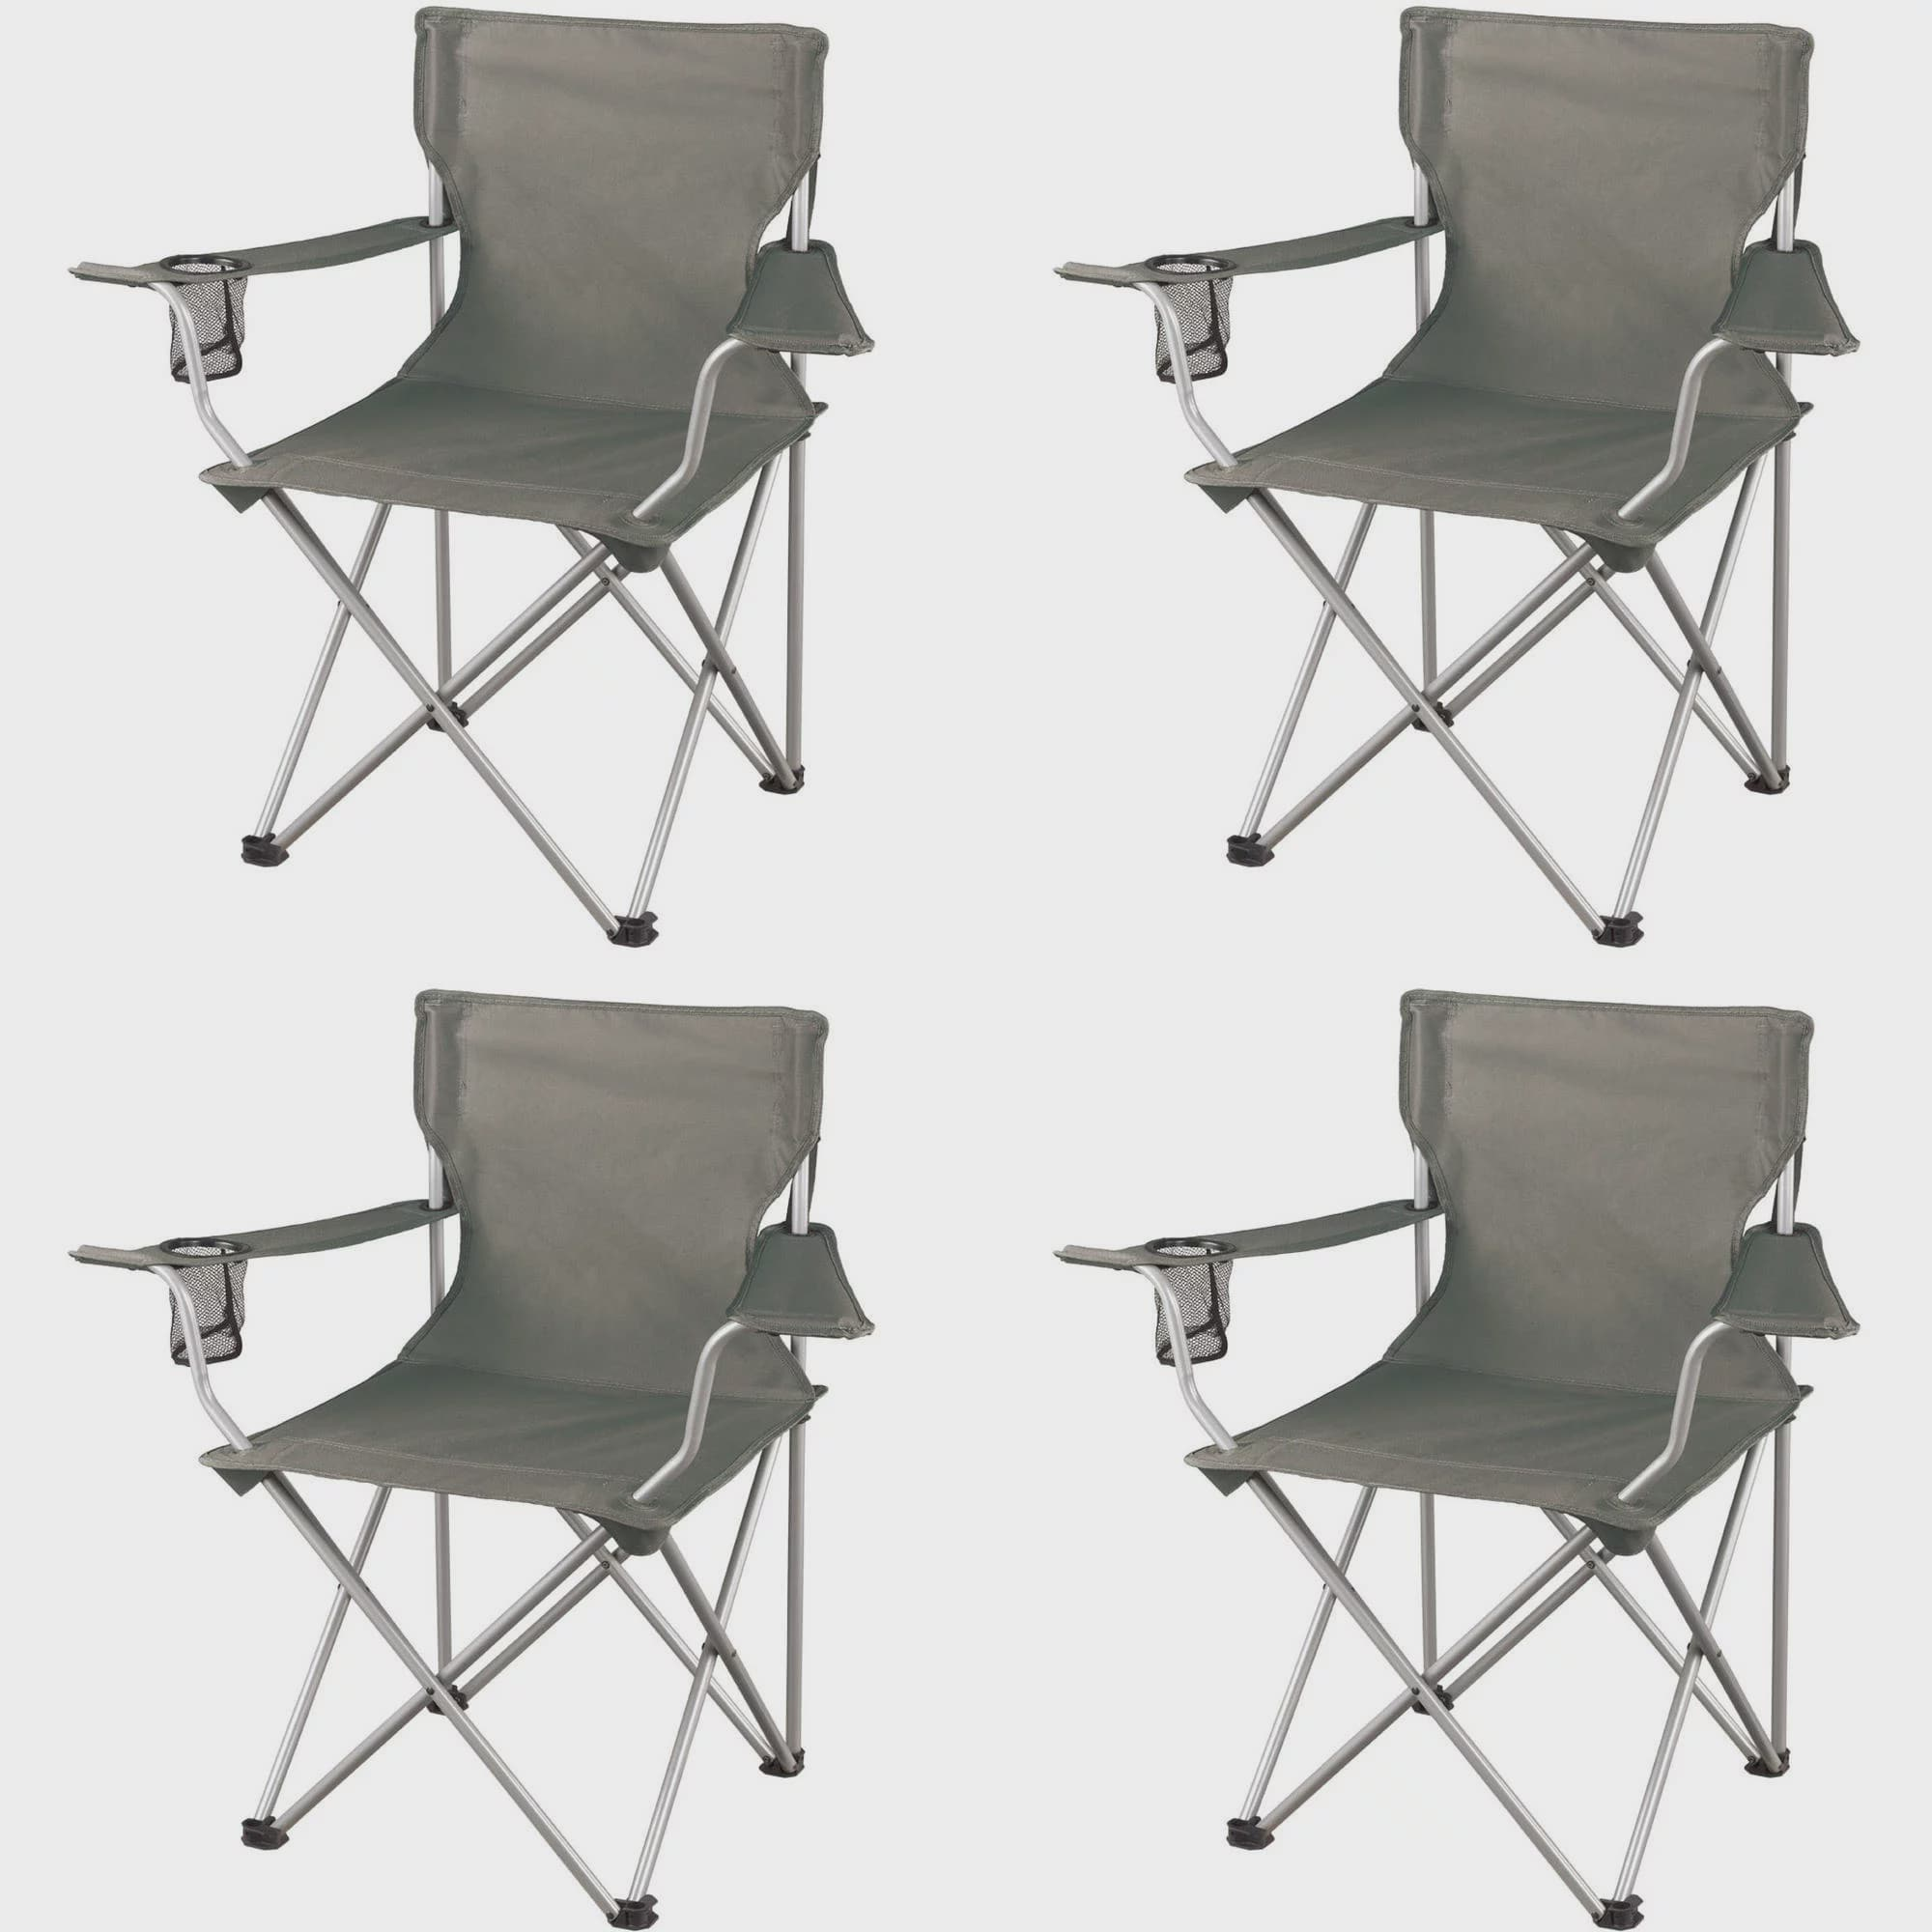 DETAILS  sc 1 st  eBay & Ozark Trail Regular Arm Chairs Set of 4 Folding Camping Seat ...